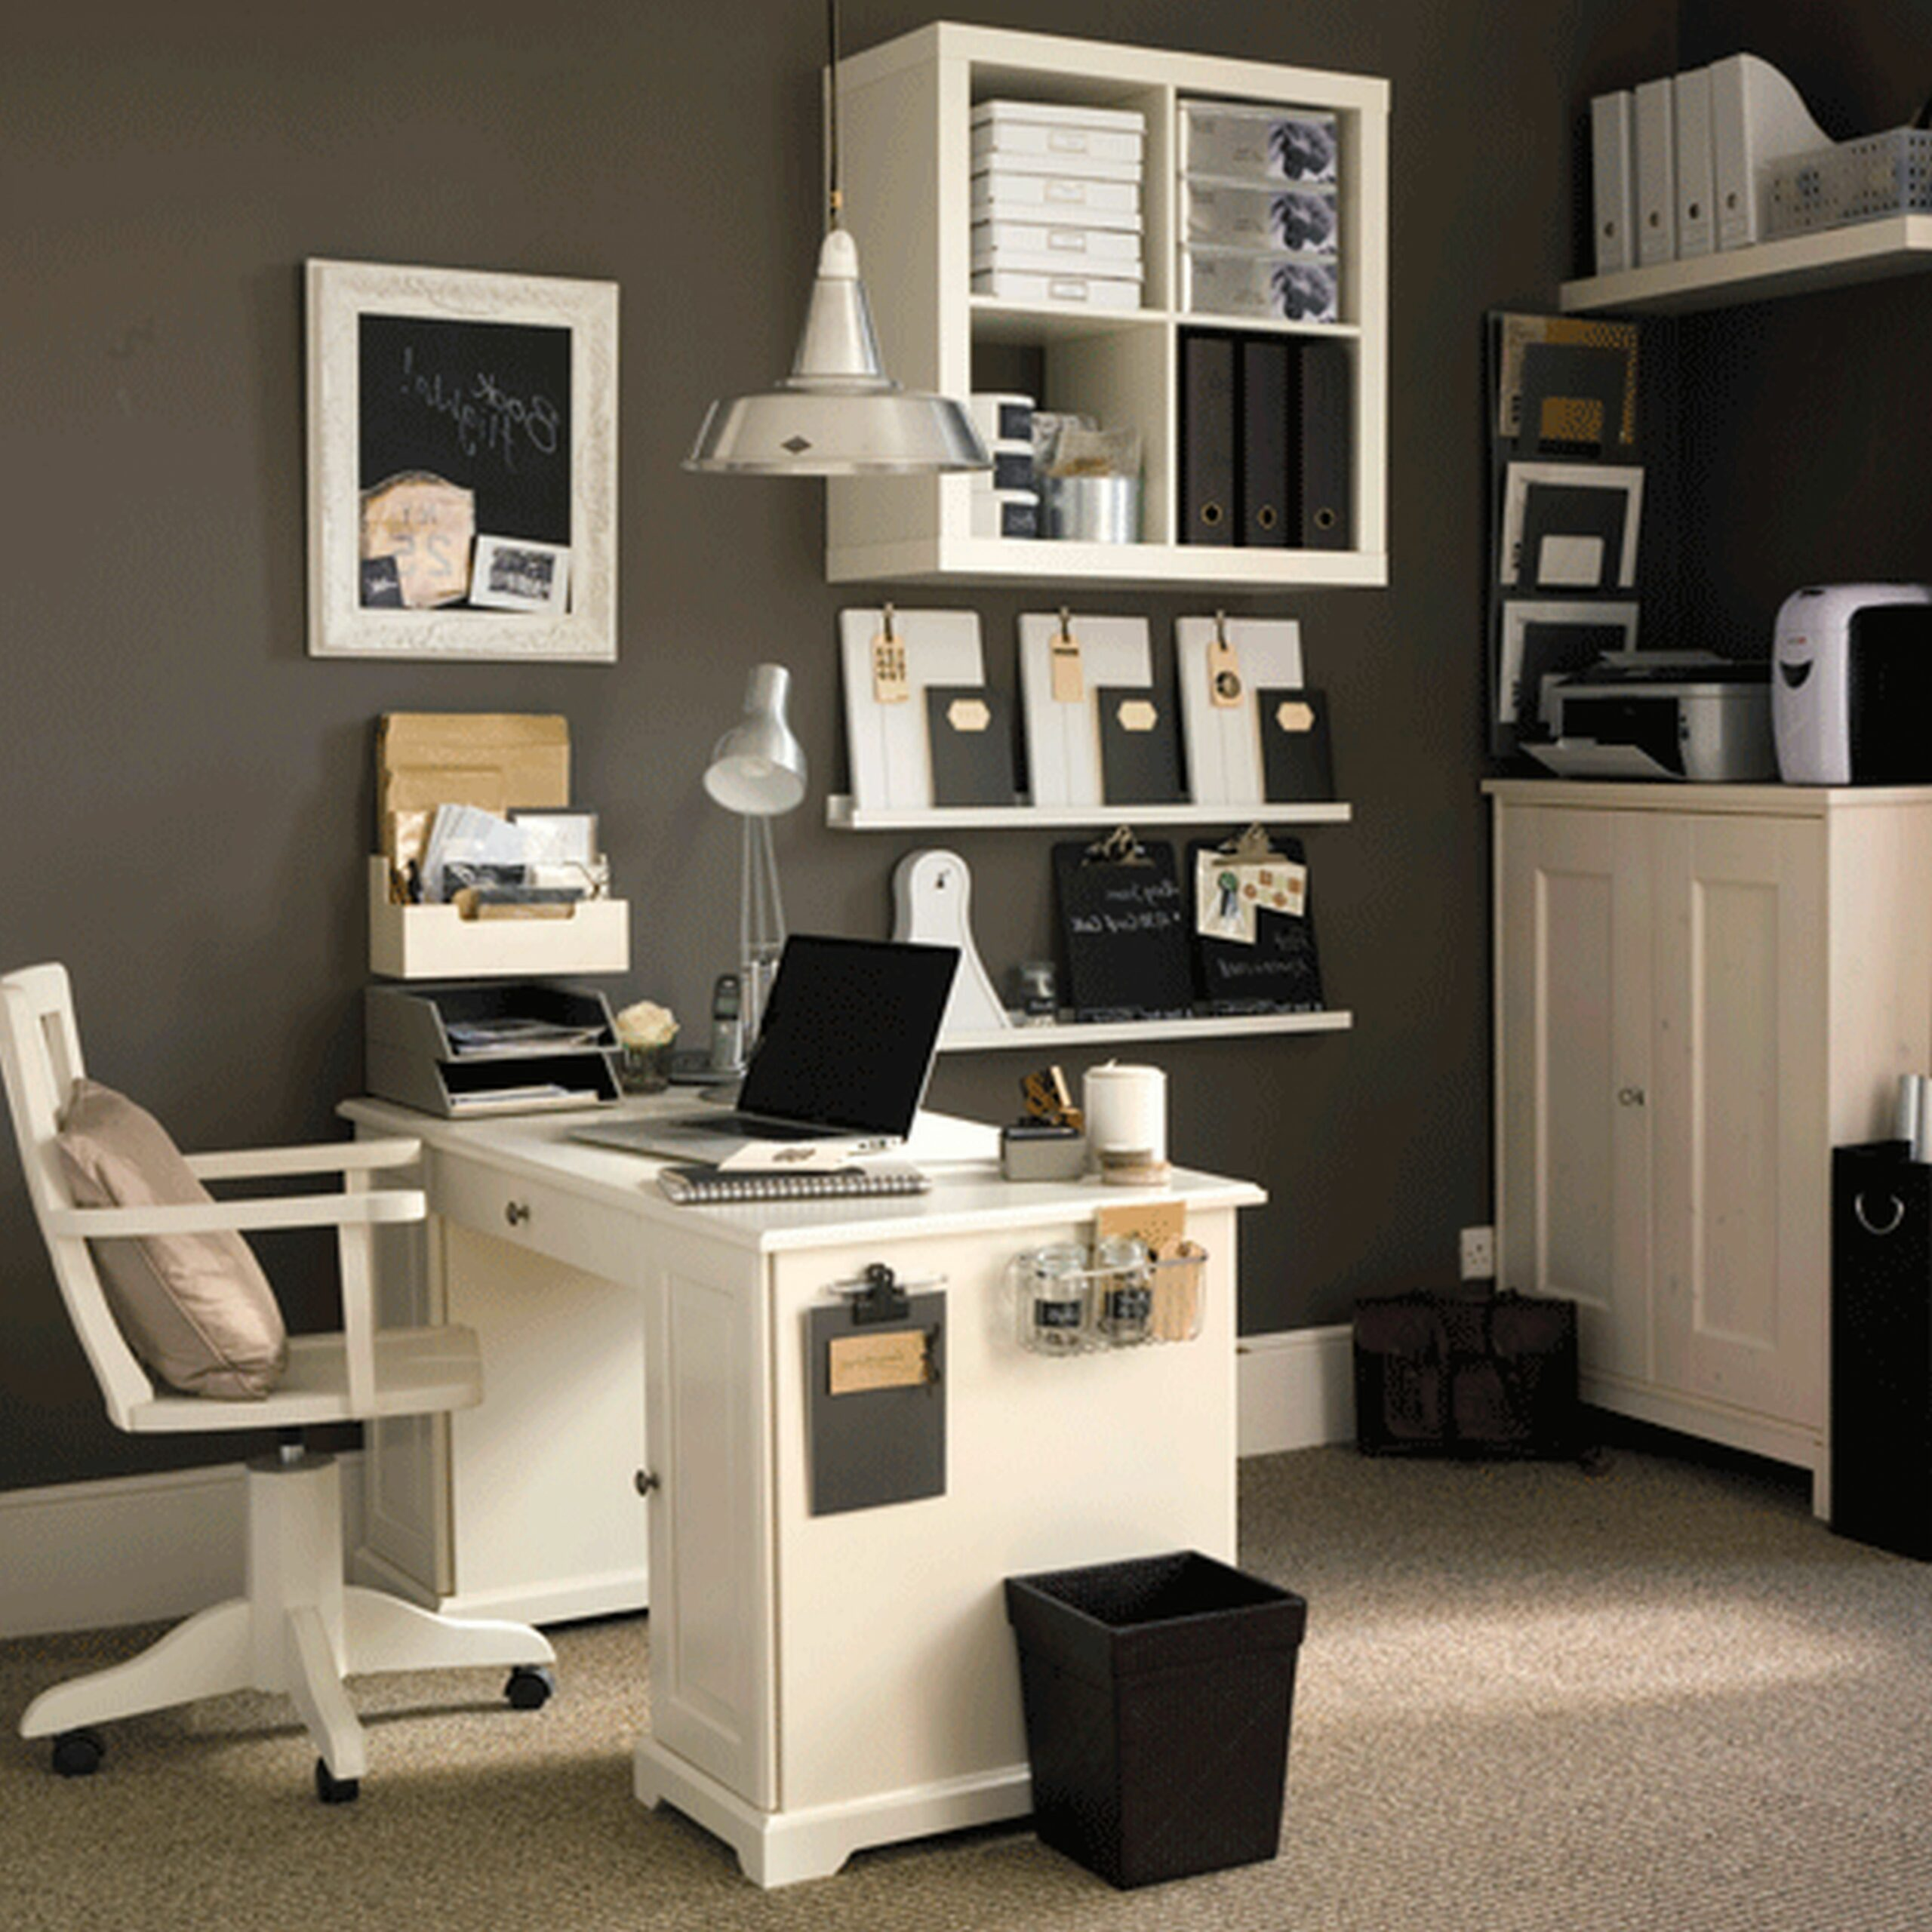 Decorations : Home Office Room Ideas Ikea Office Design Uk On ..